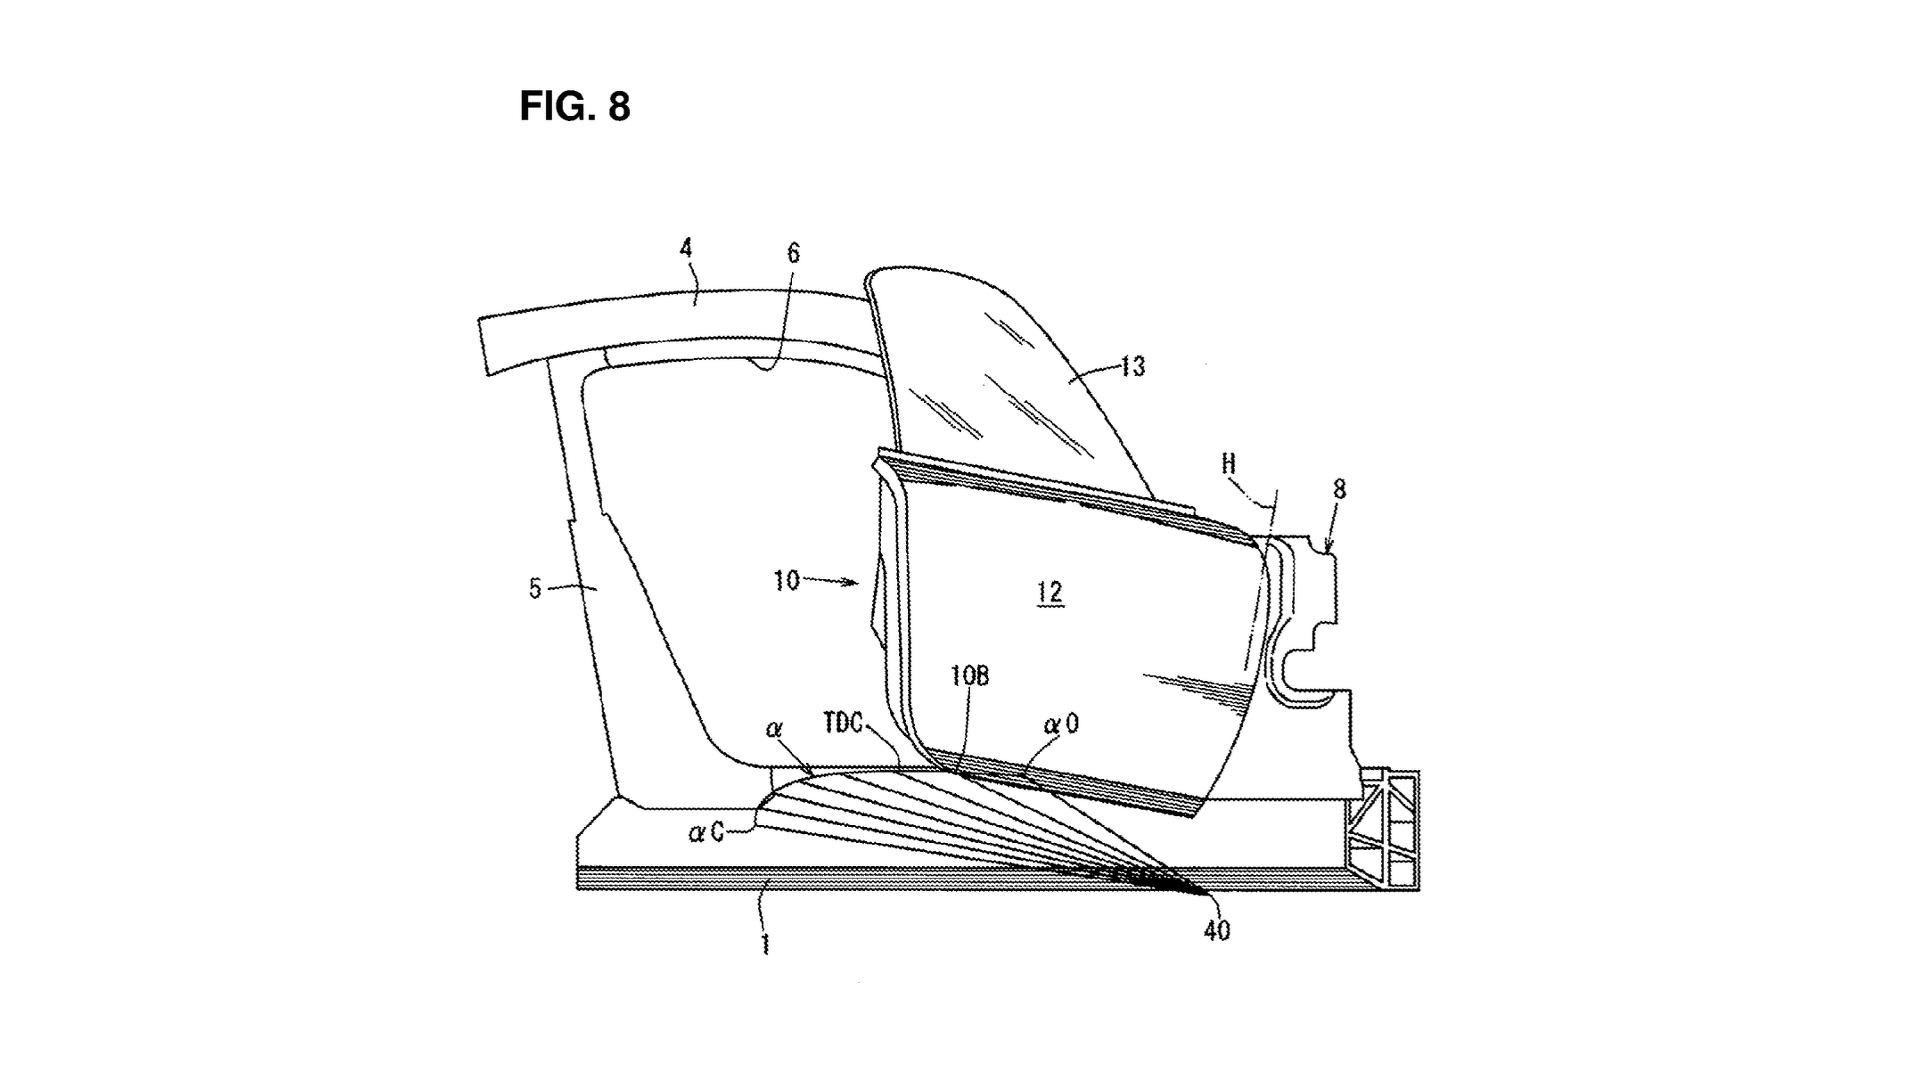 ... Mazda Door Support Structure of Automotive Vehicle (rumored RX-9 rotary sports car)  sc 1 st  Autoevolution.com & Mazda Patents Doors That Pivot Upward Drawings Reveal Sports Car ...